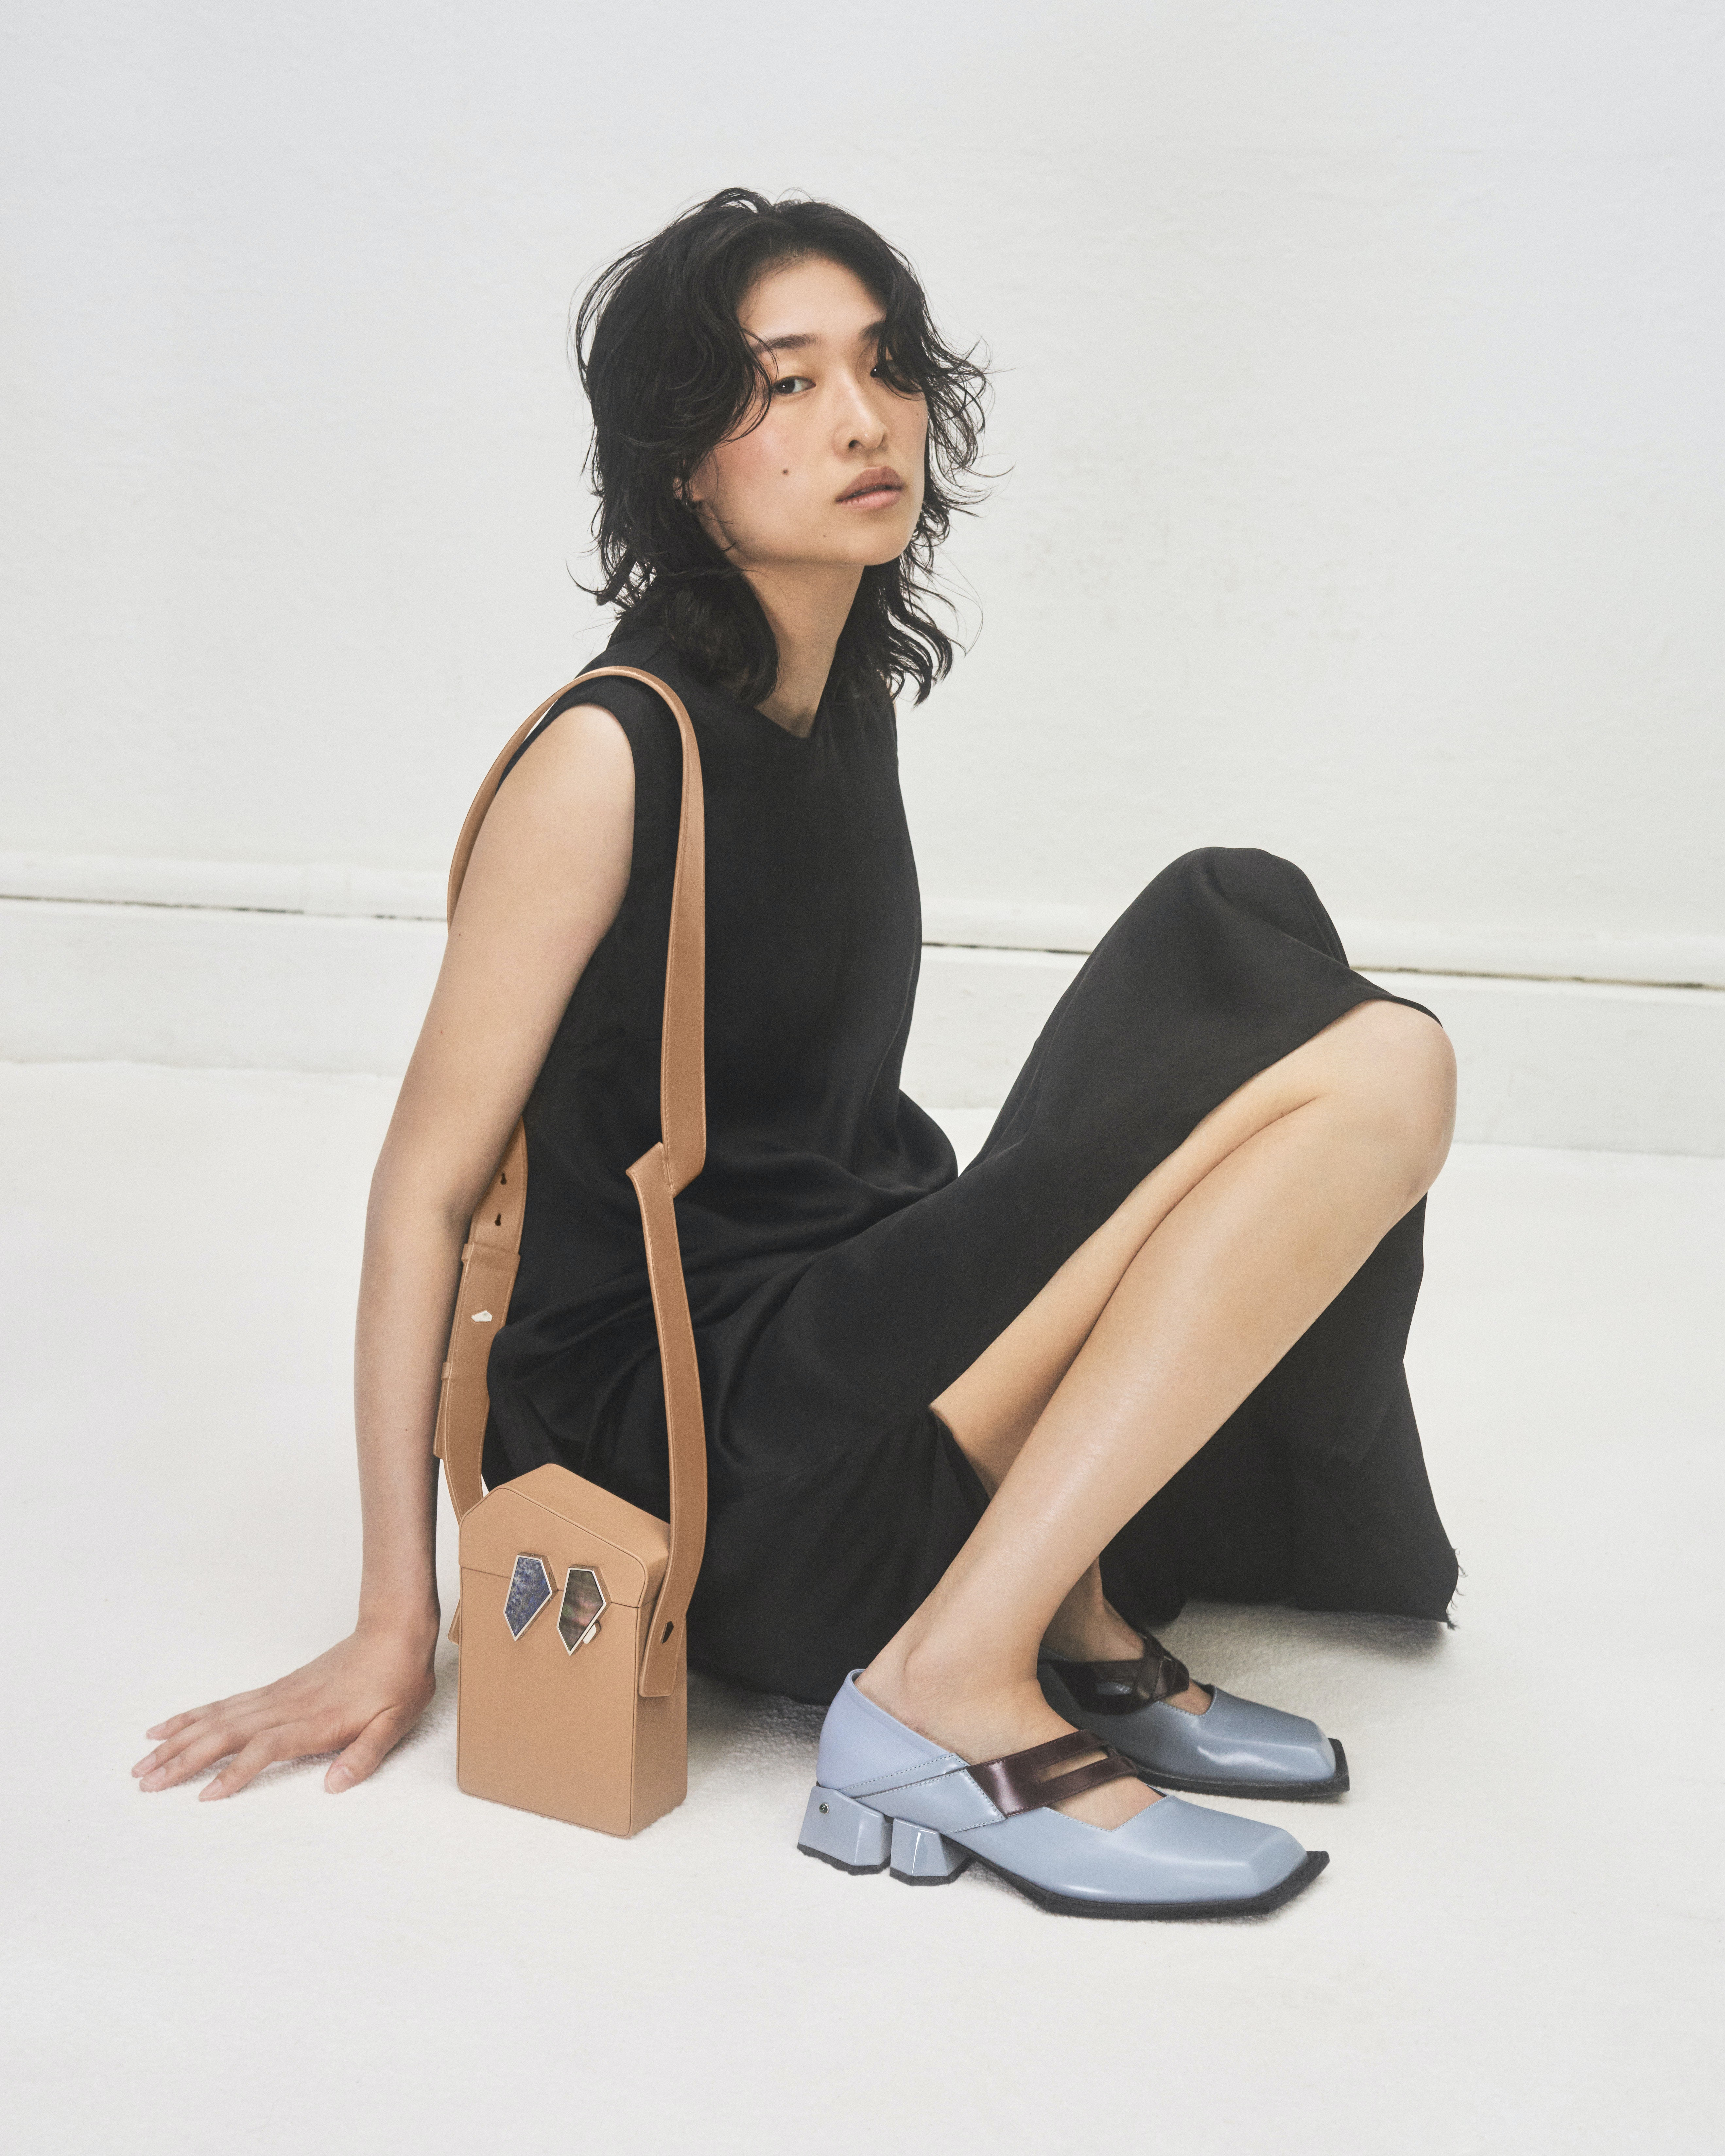 Steven Ma\'s first collection of shoes and bags modelled by Chu Wong. Casper Sejersen.